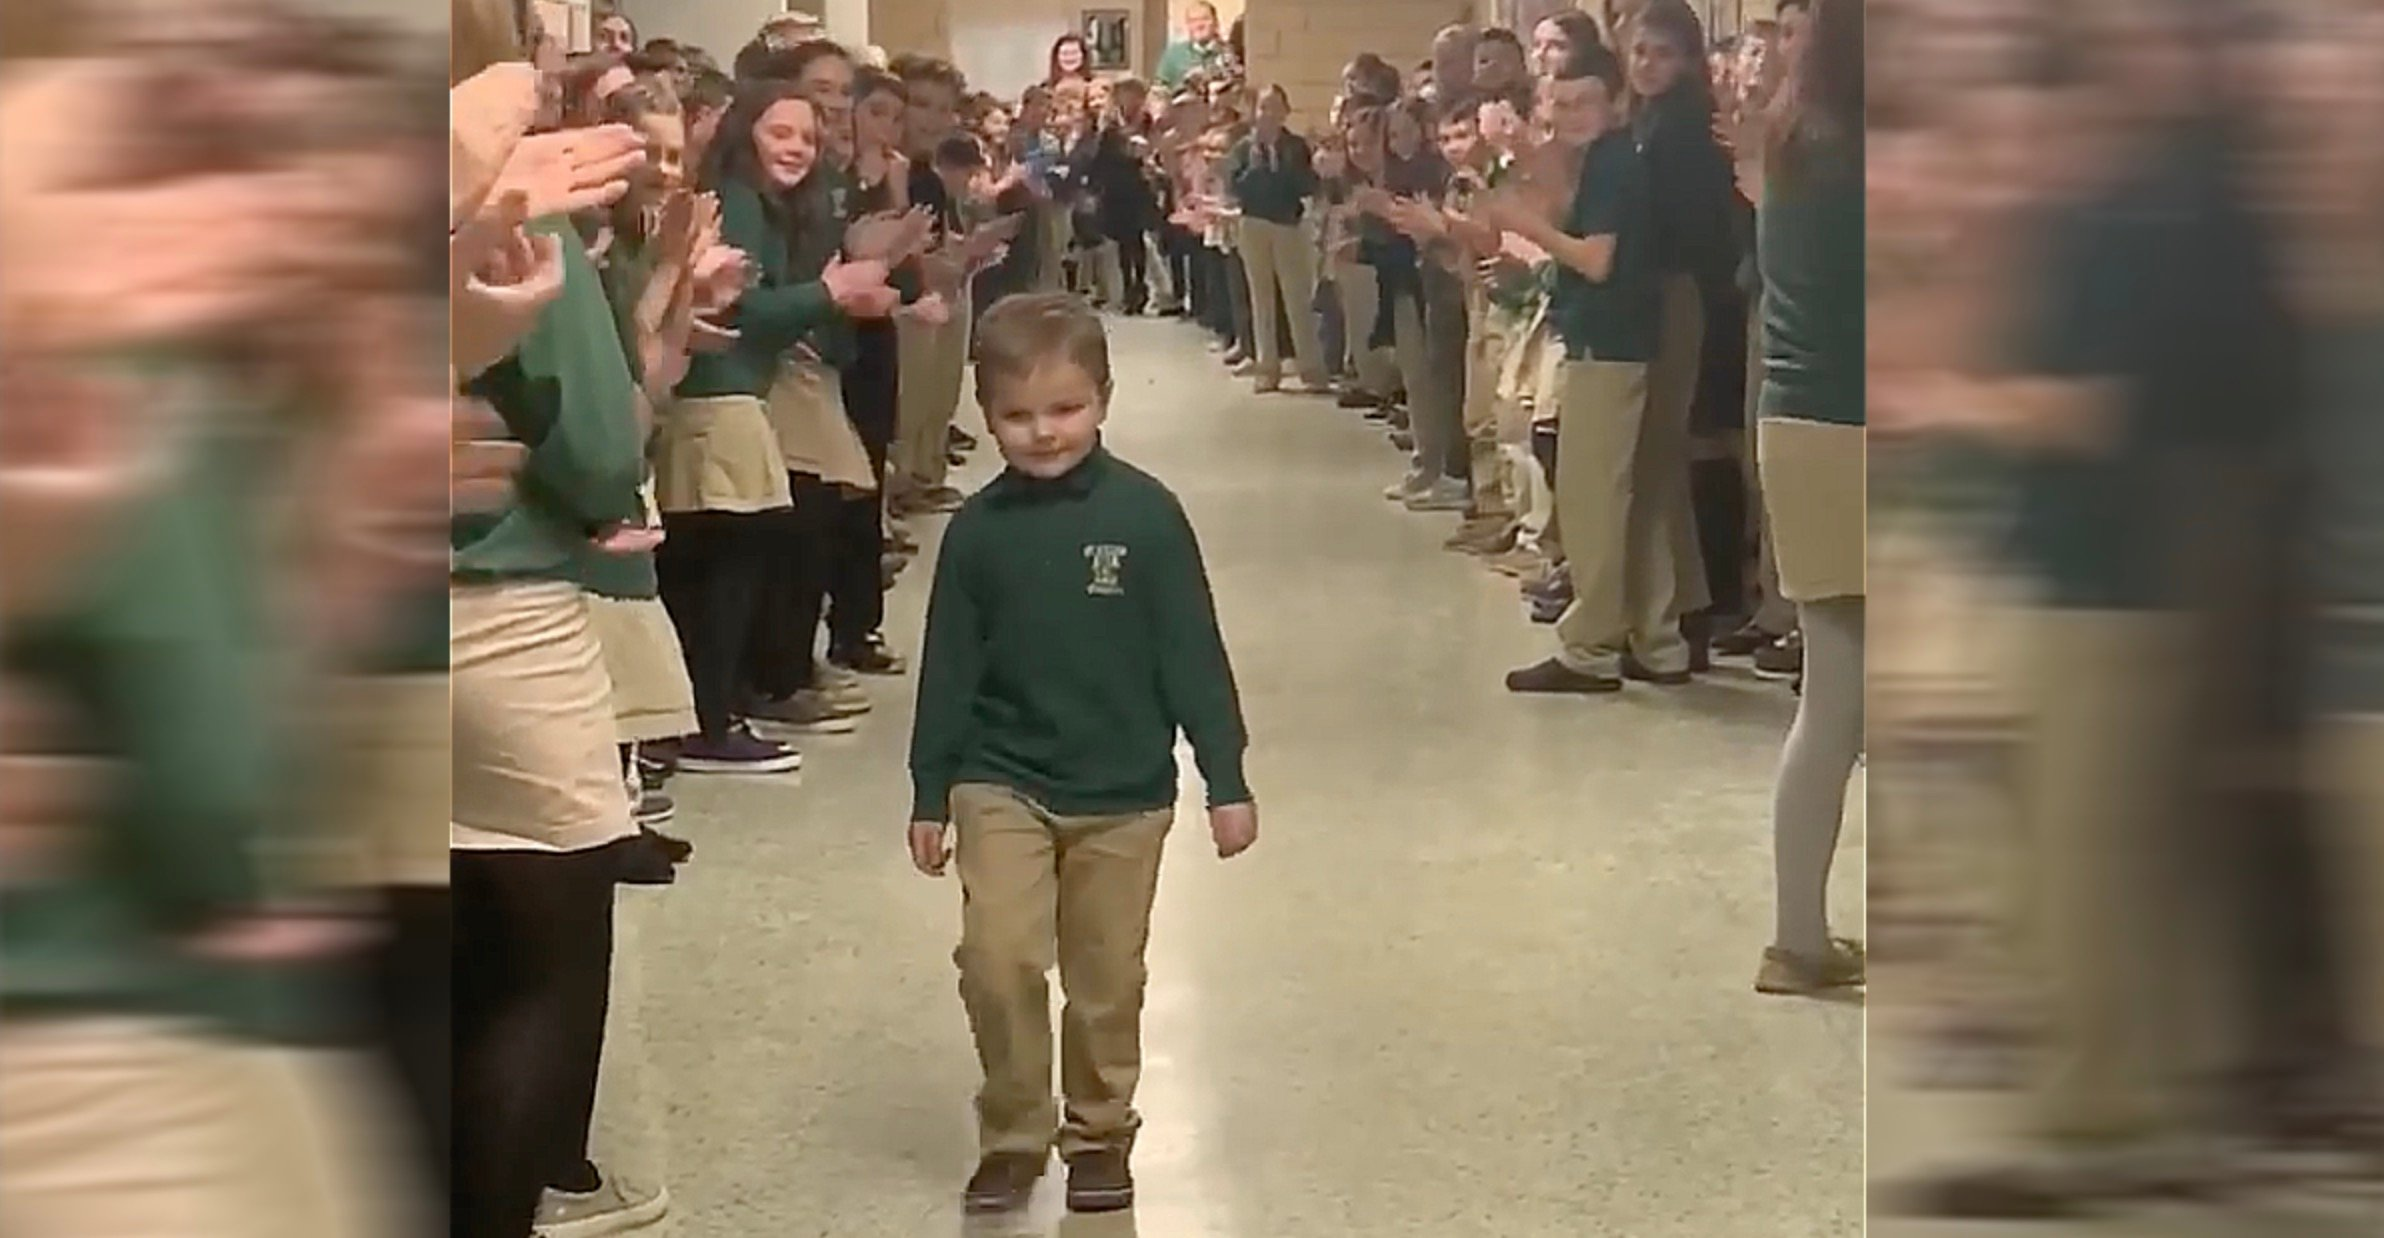 return to school for 6-year-old who beat cancer